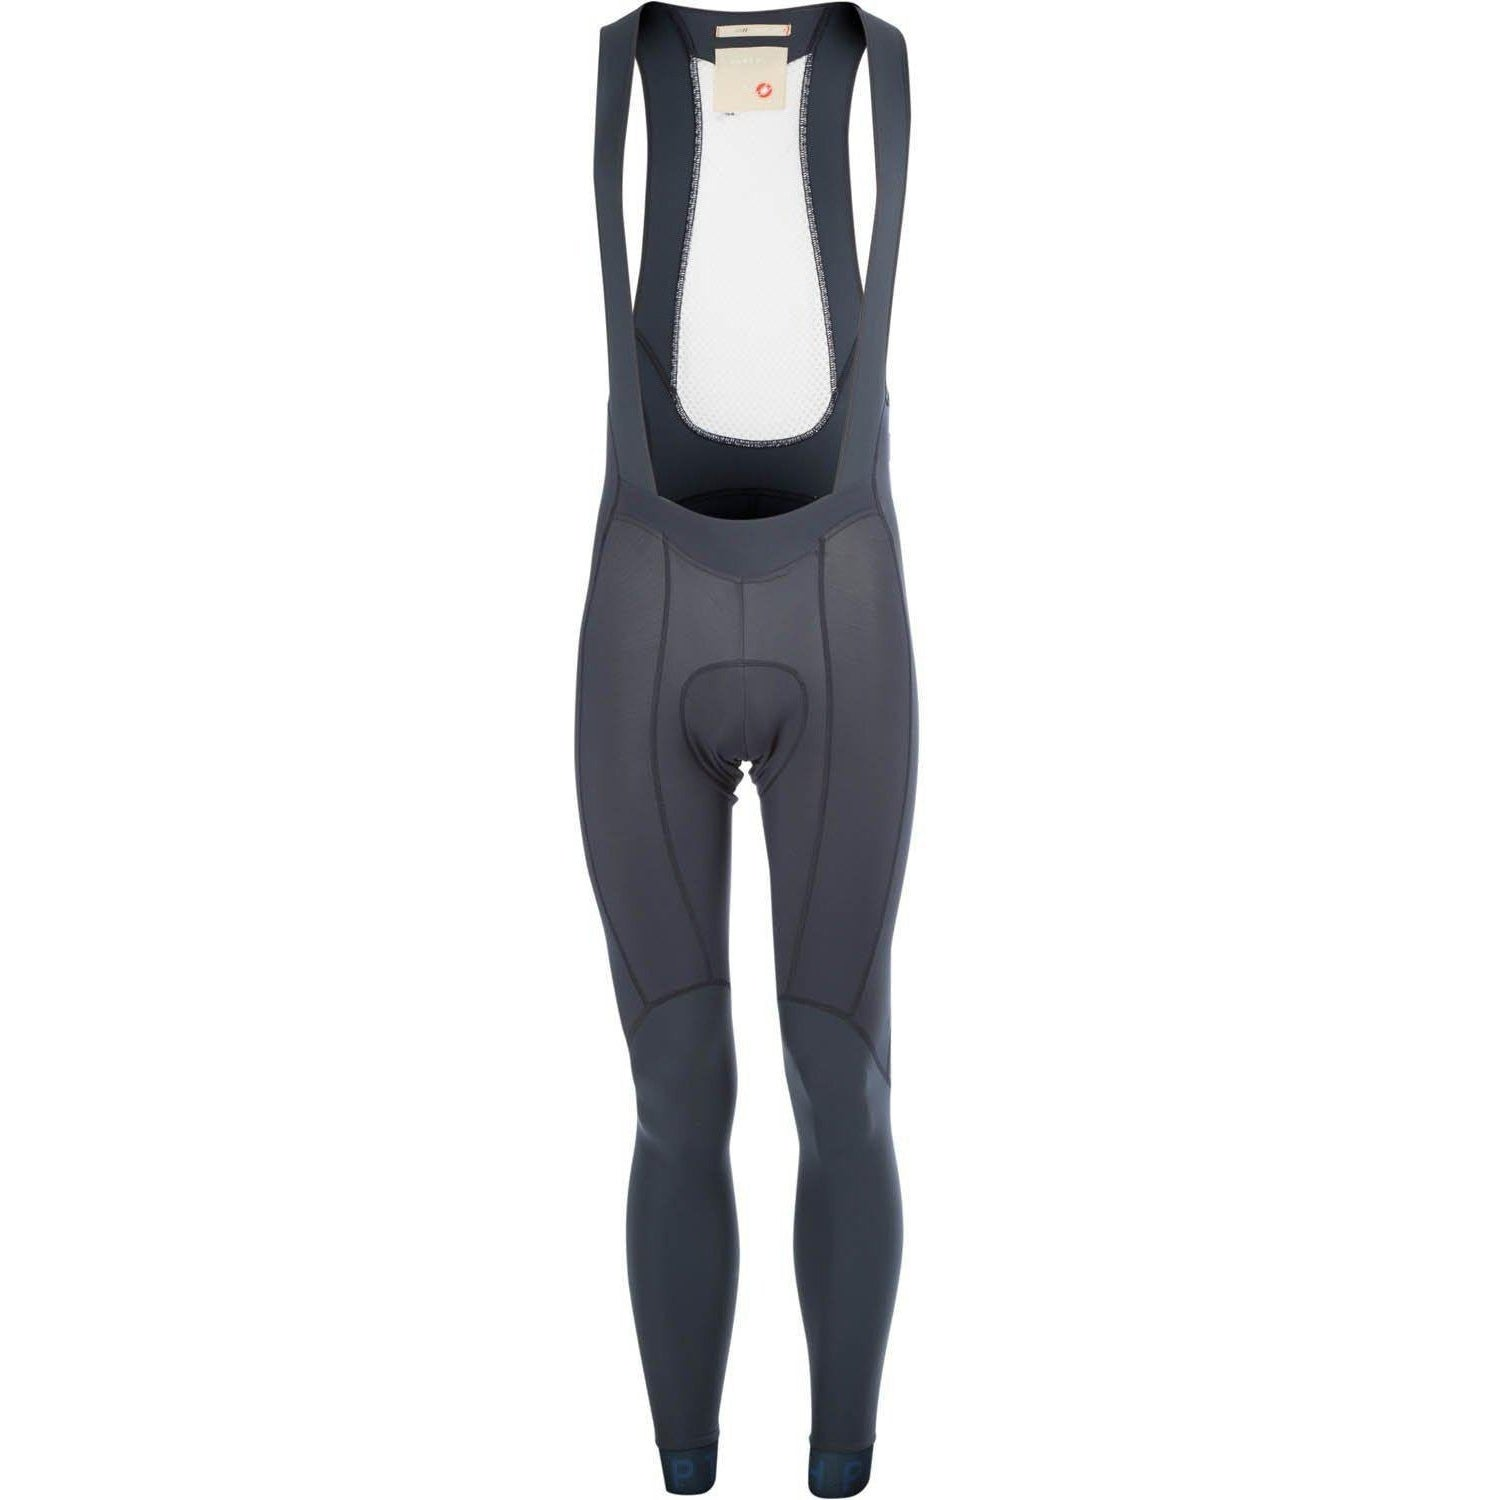 Chpt3-Chpt3 OG 1.13 Bibtights-Outer Space-29-CST920013307429-saddleback-elite-performance-cycling